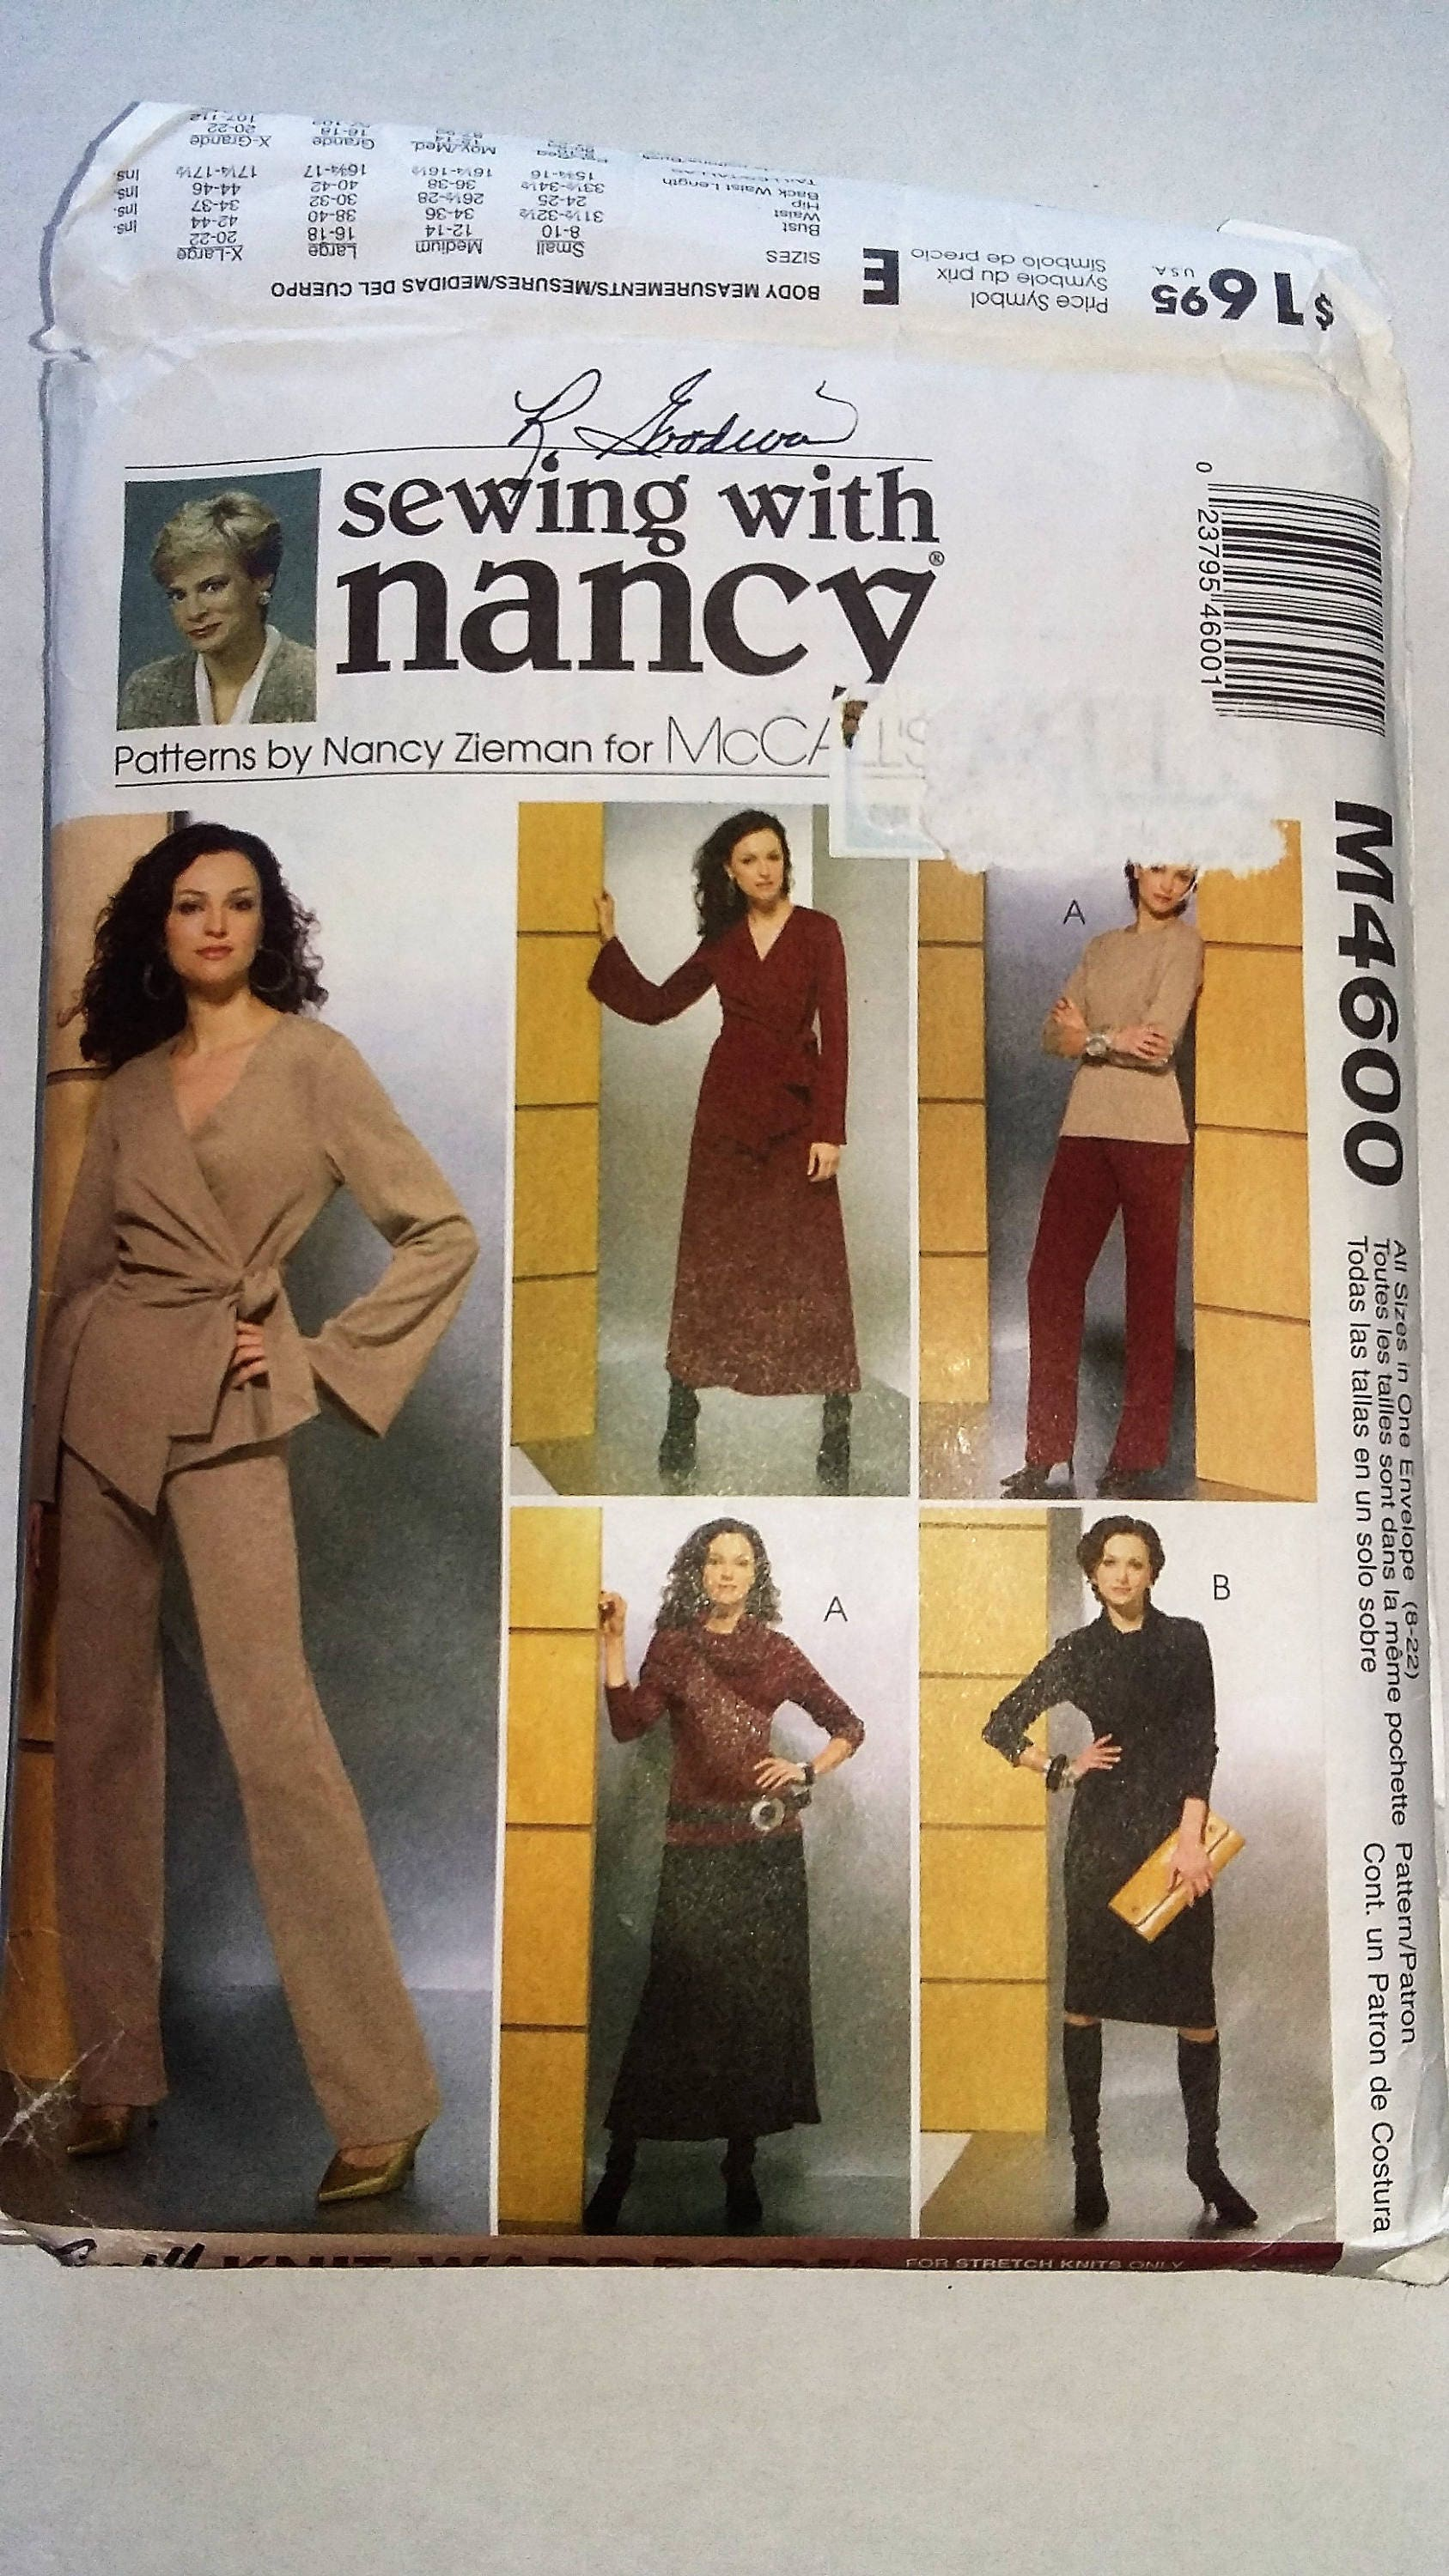 Mccalls m4600 pattern knit wardrobe sewing with nancy description mccalls m4600 pattern knit wardrobe sewing with nancy jeuxipadfo Image collections